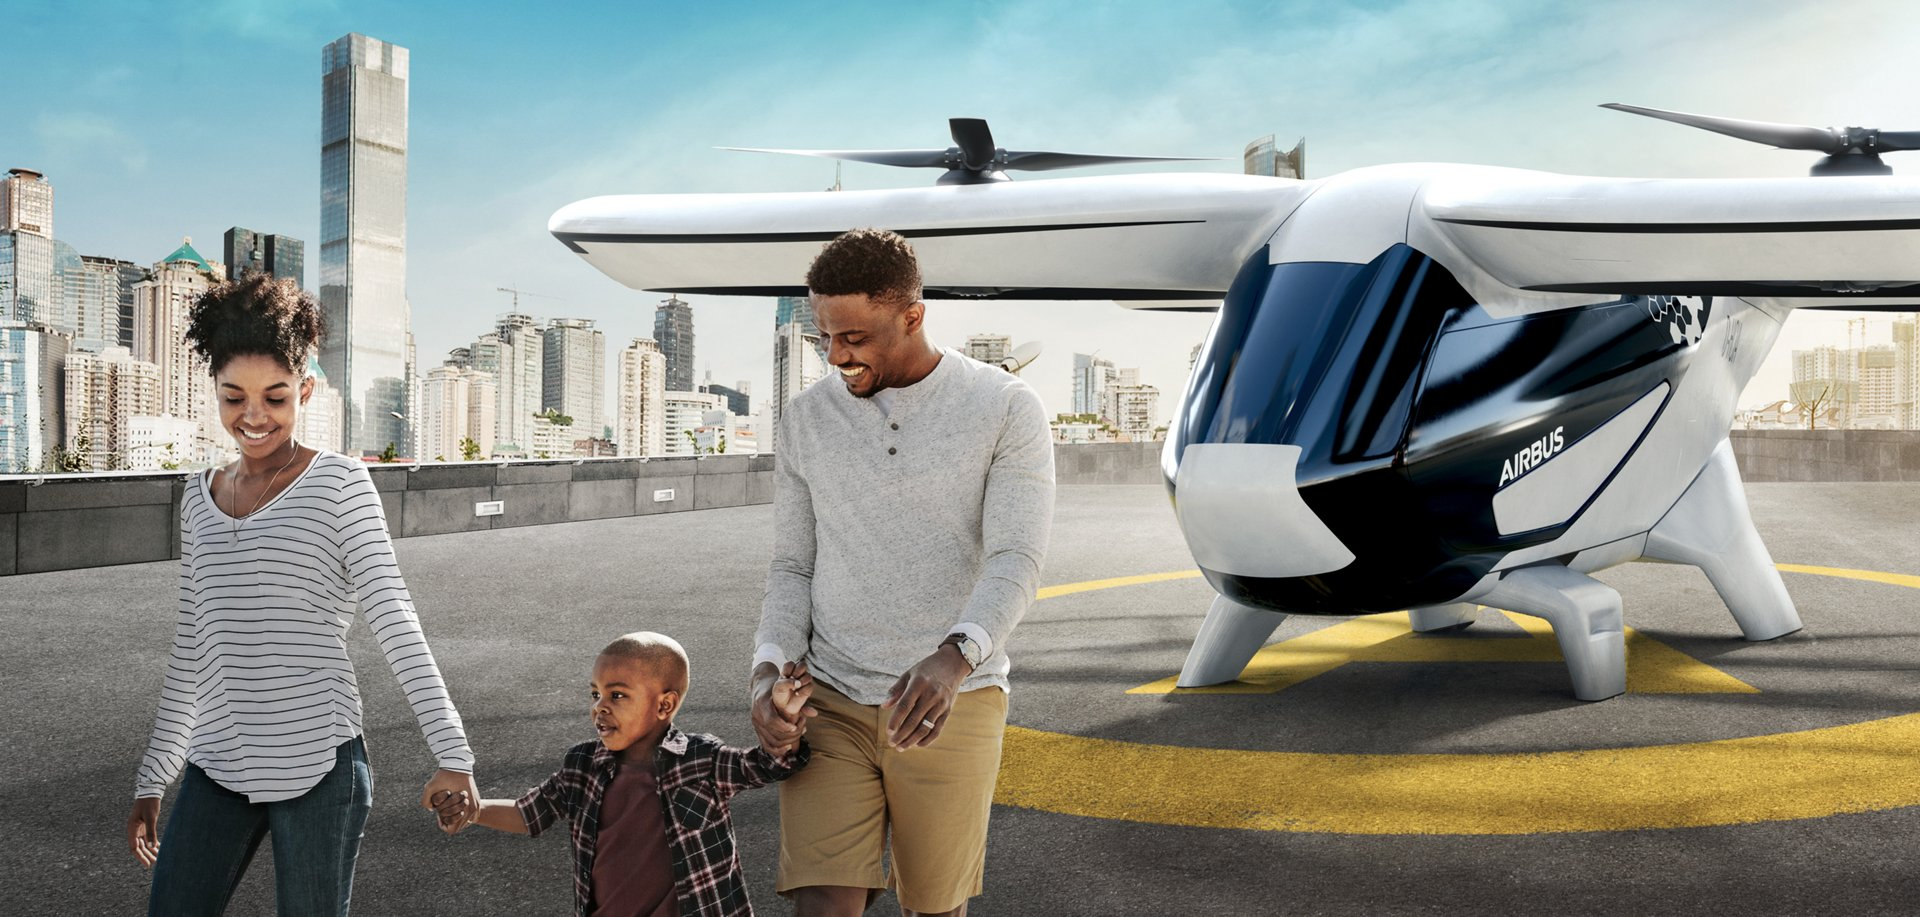 In this representative image, a family is depicted on the helipad after disembarking Airbus' CityAirbus four-seat electric vertical take-off and landing (eVTOL) vehicle.